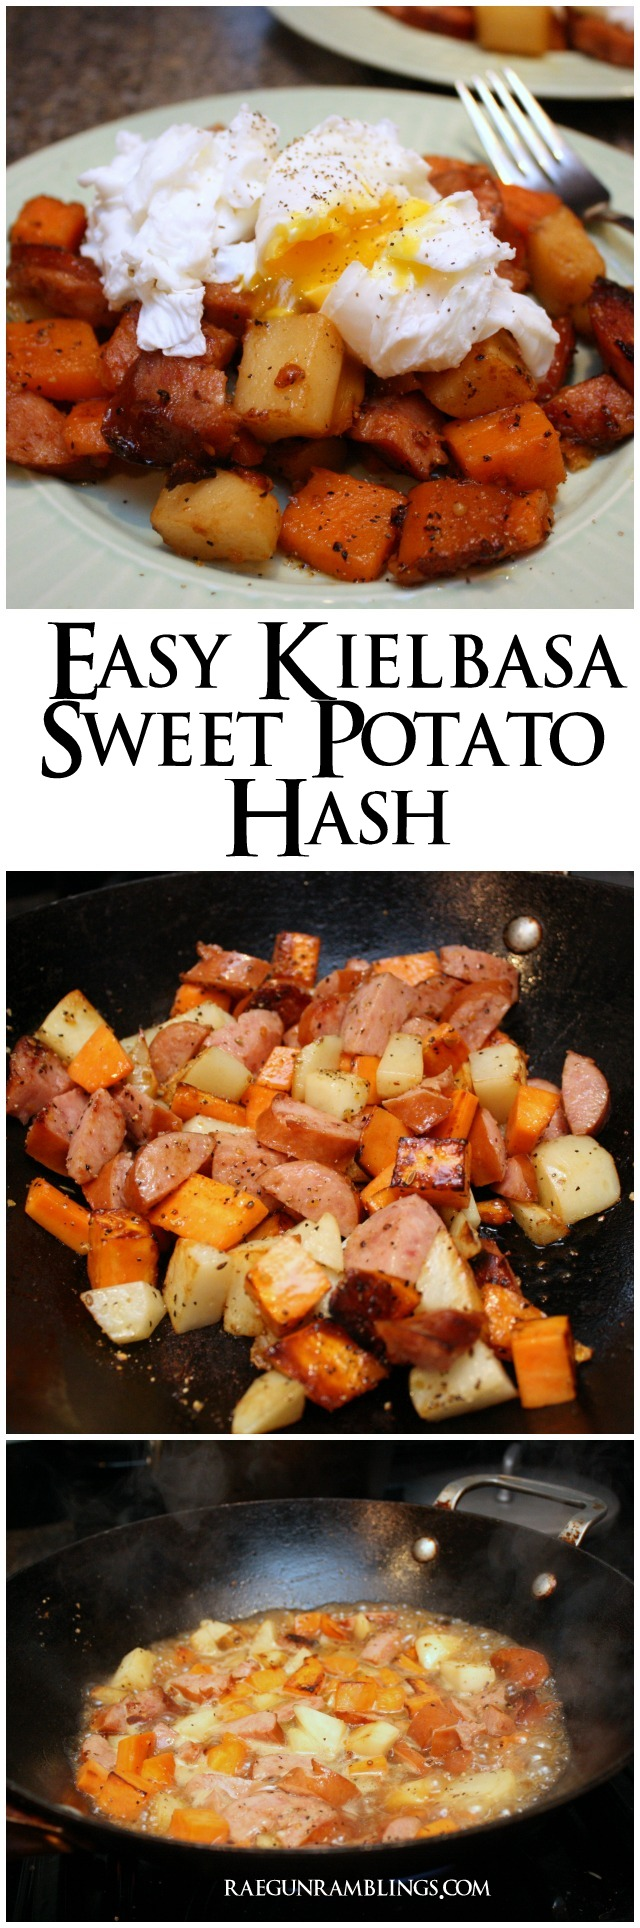 One of my favorite weeknight meals. Sweet potato and sausage hash. so easy and yummy recipe at Rae Gun Ramblings.com